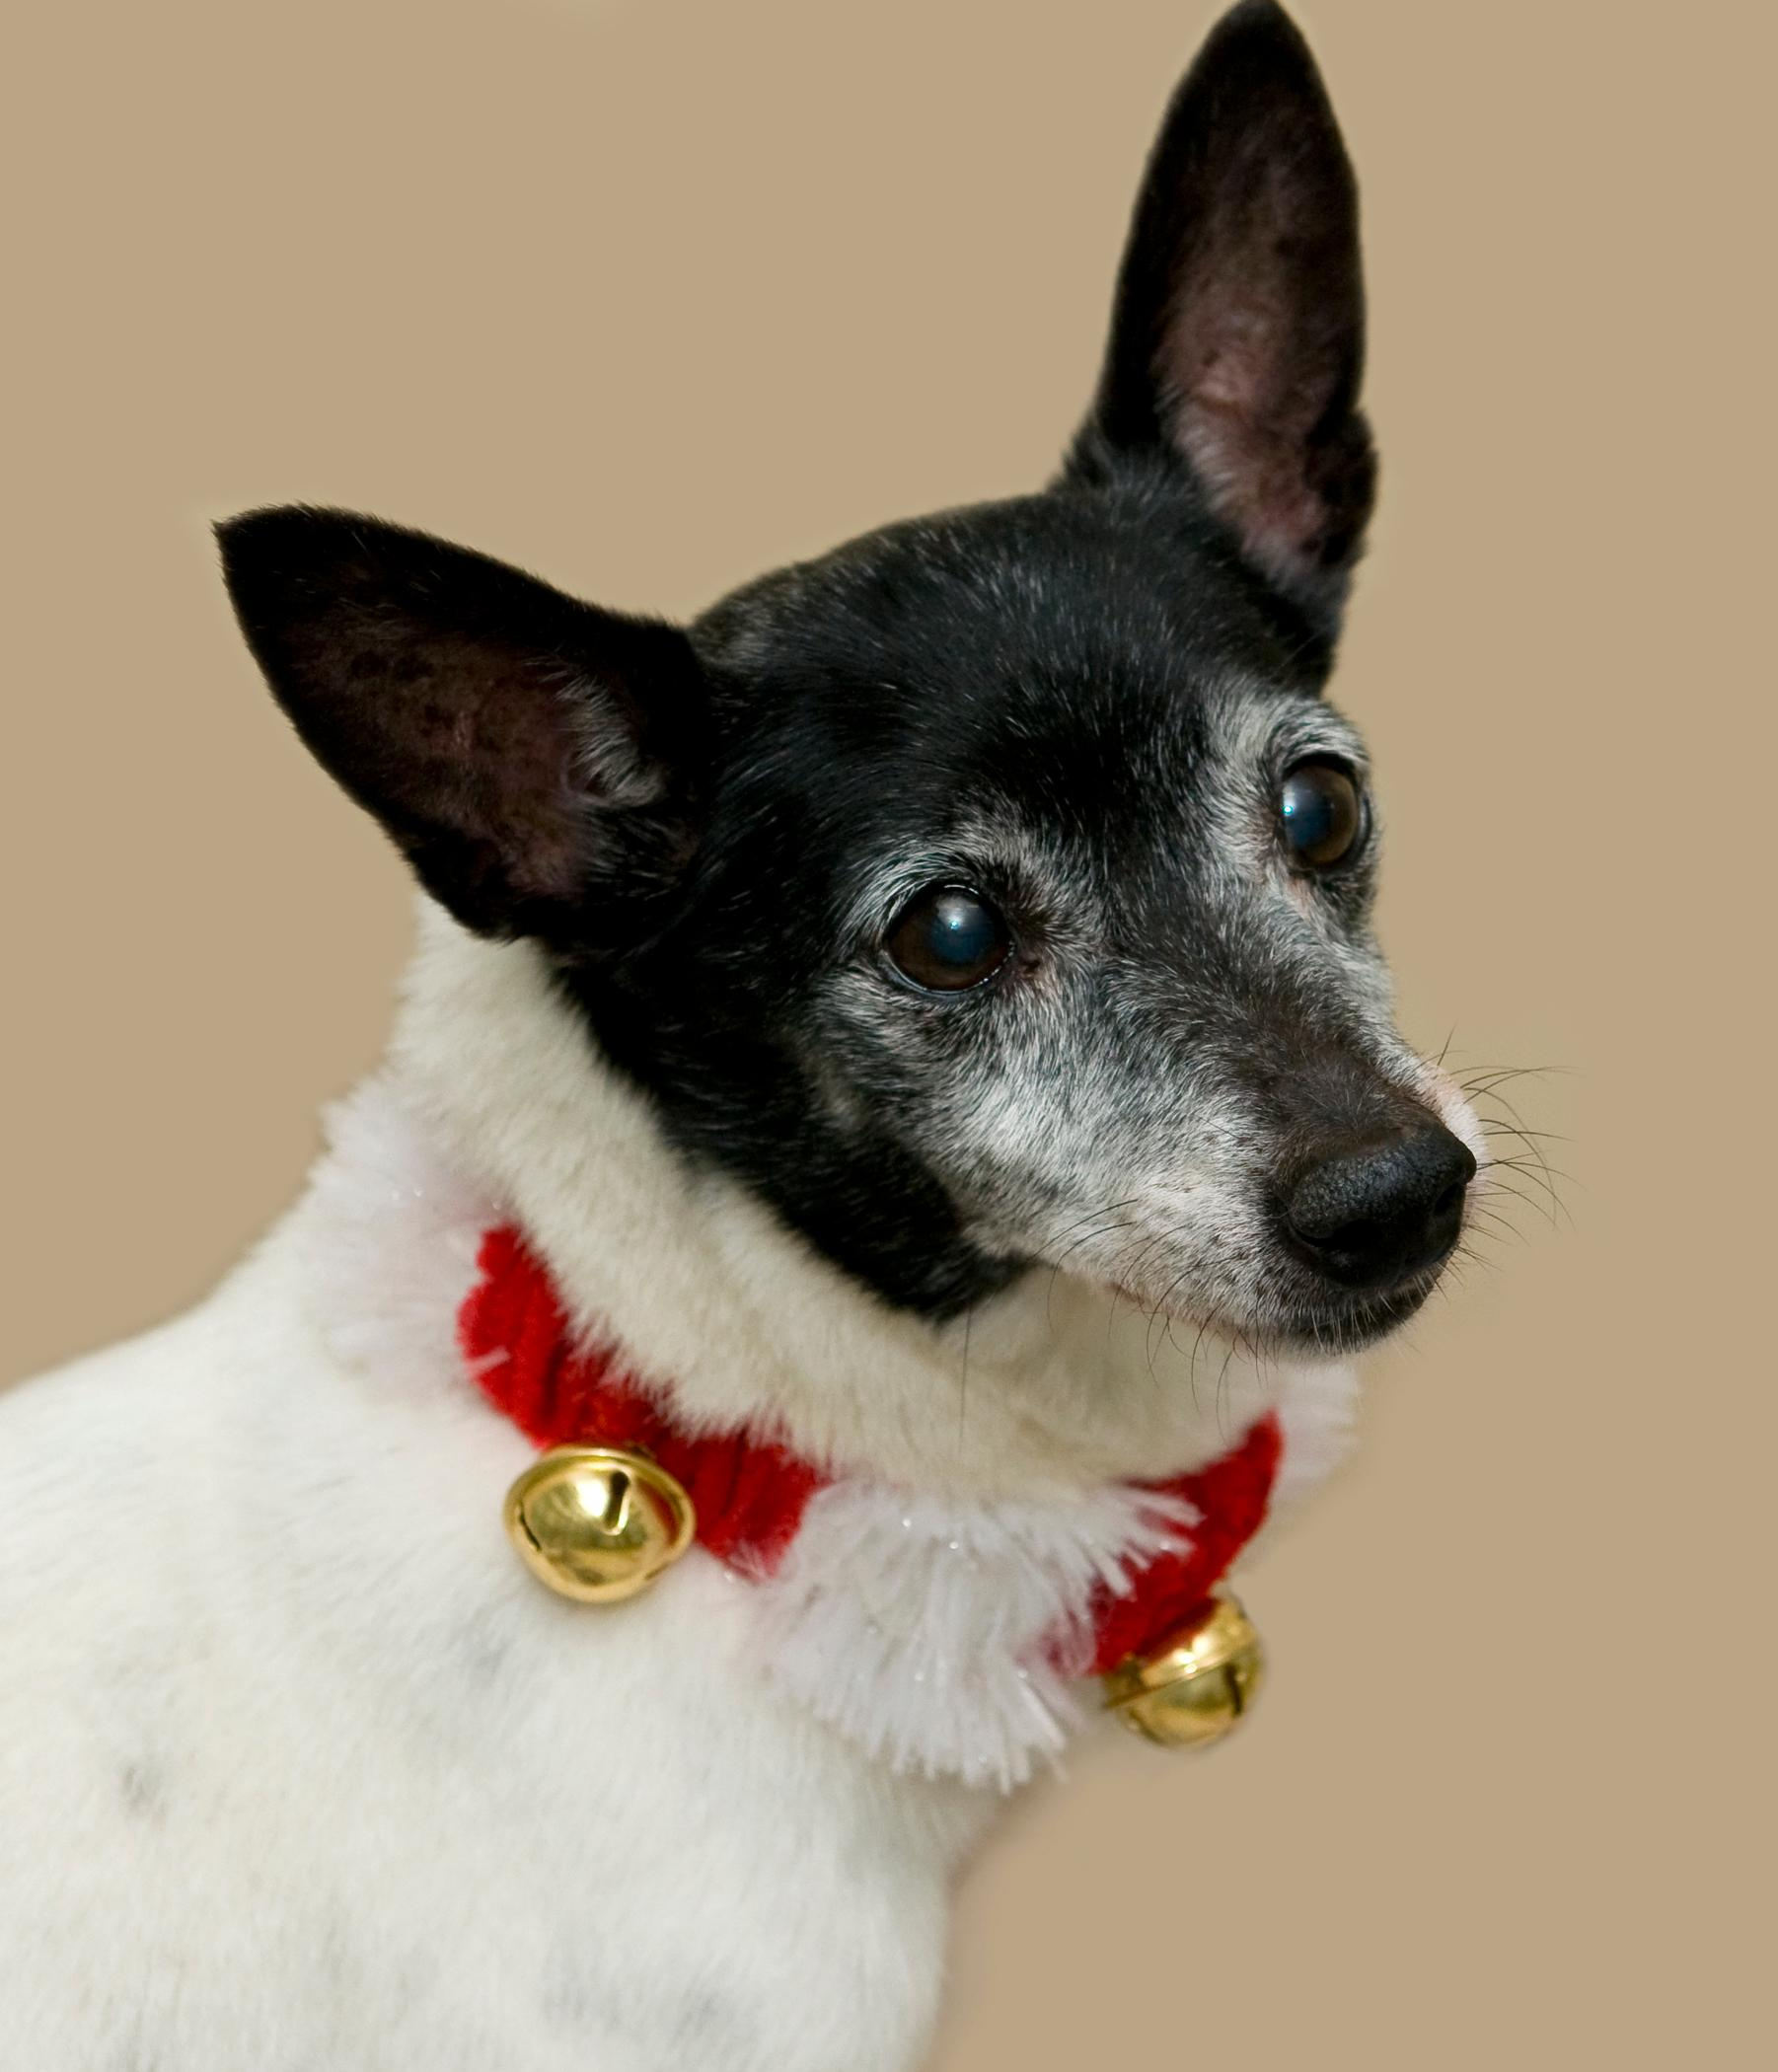 Bruno is available for adoption at the Humane Rescue Alliance (HRA)<p></p>